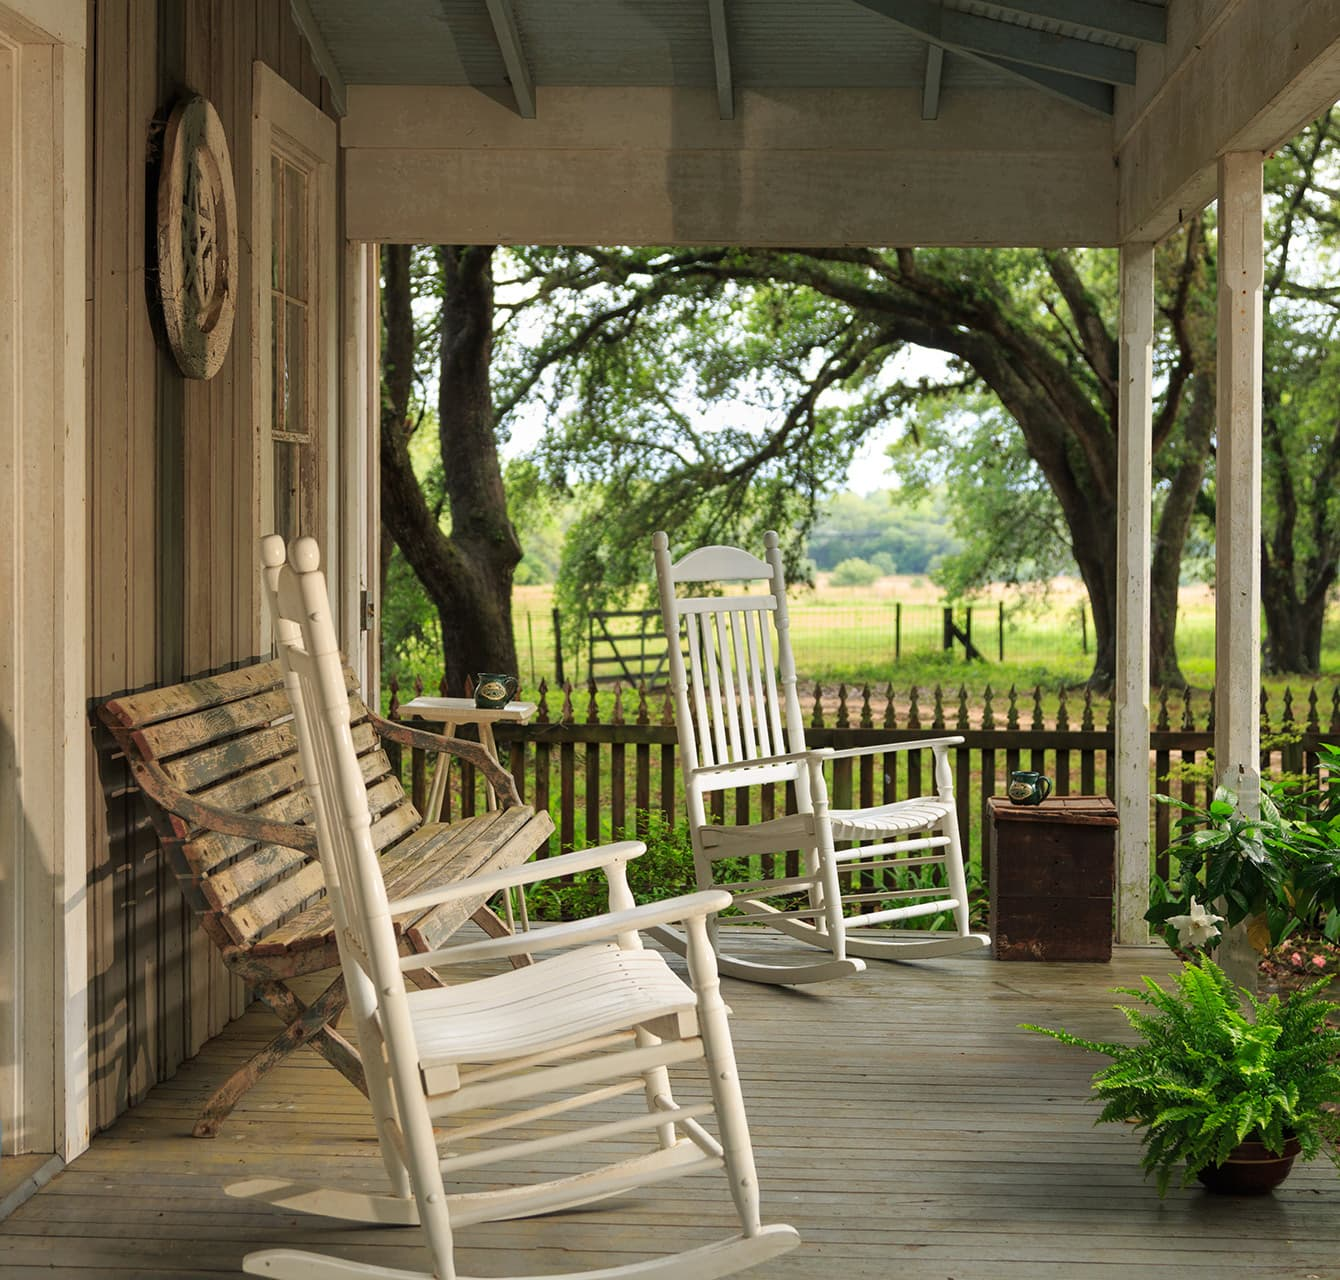 Texas Farmhouse front porch with white rocking chairs